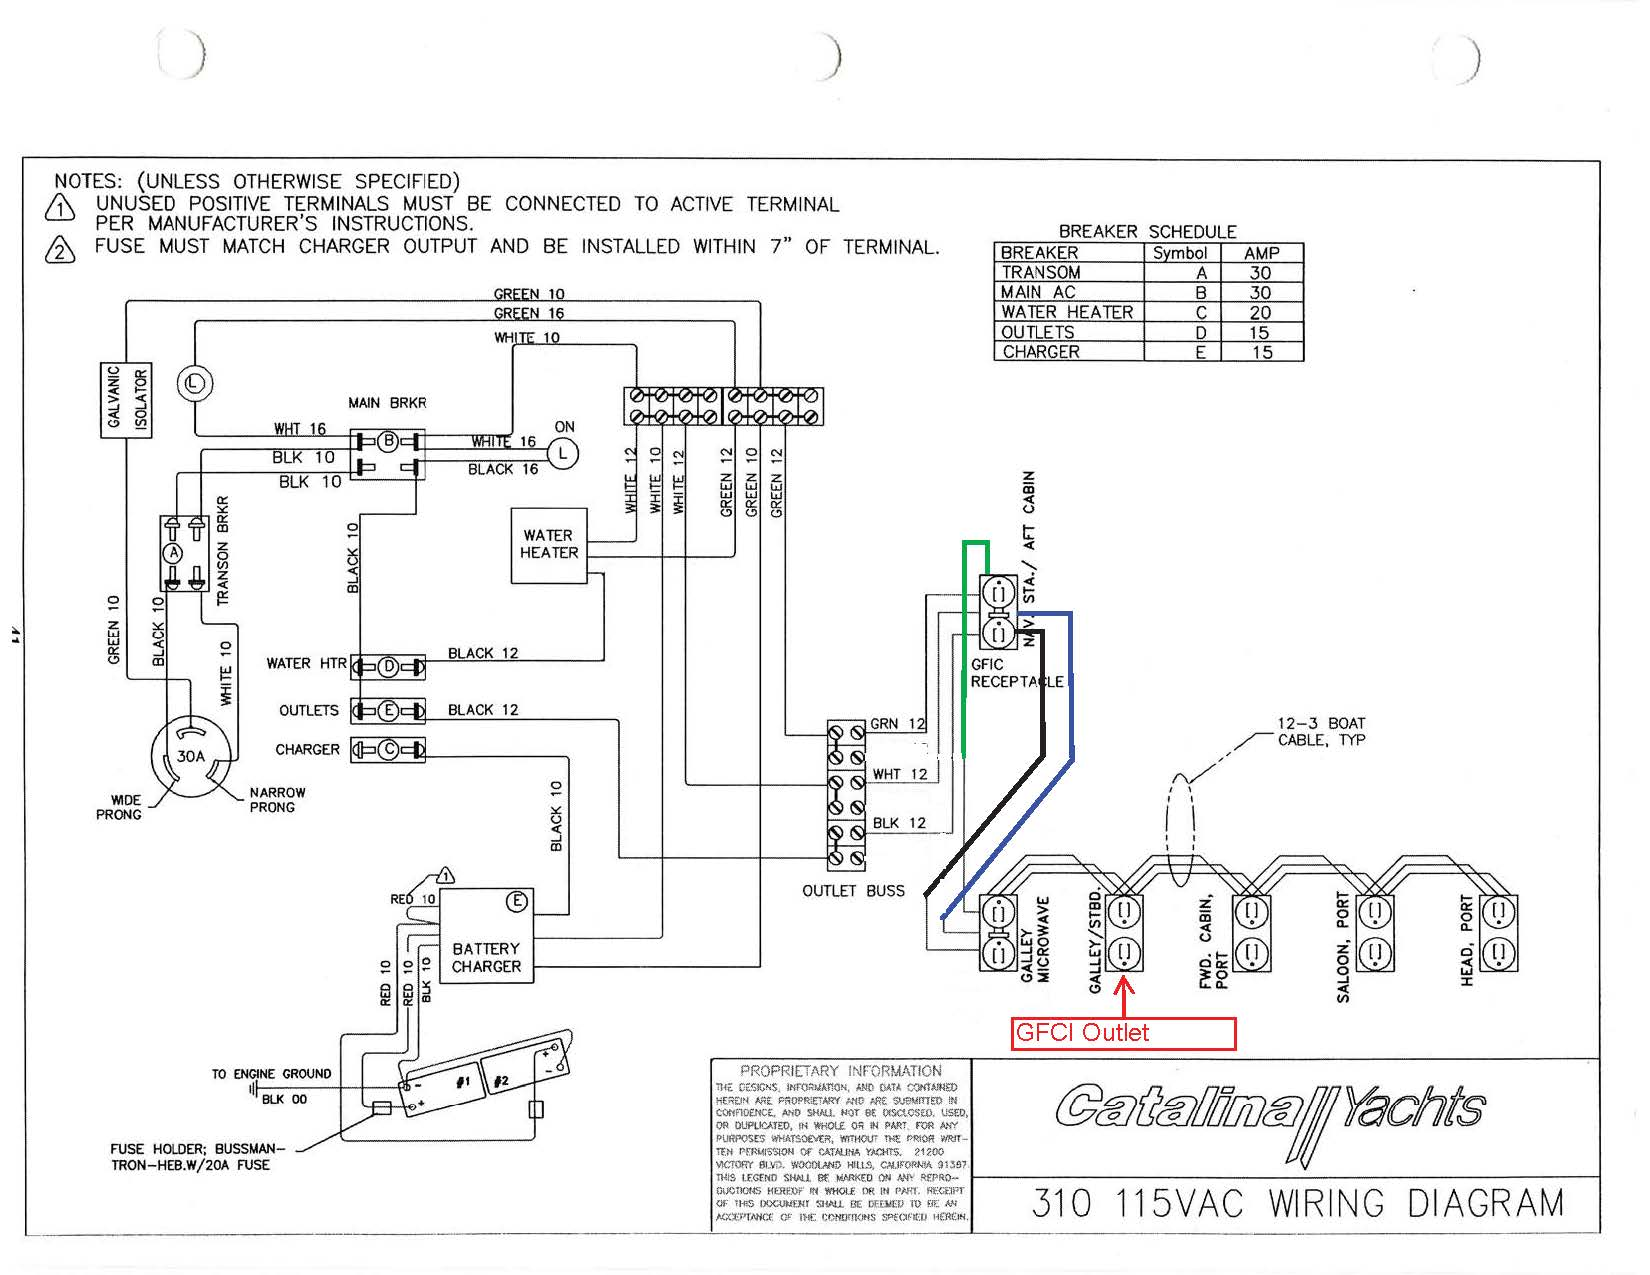 Basic Shop Wiring Diagrams - Home Wiring Diagrams on